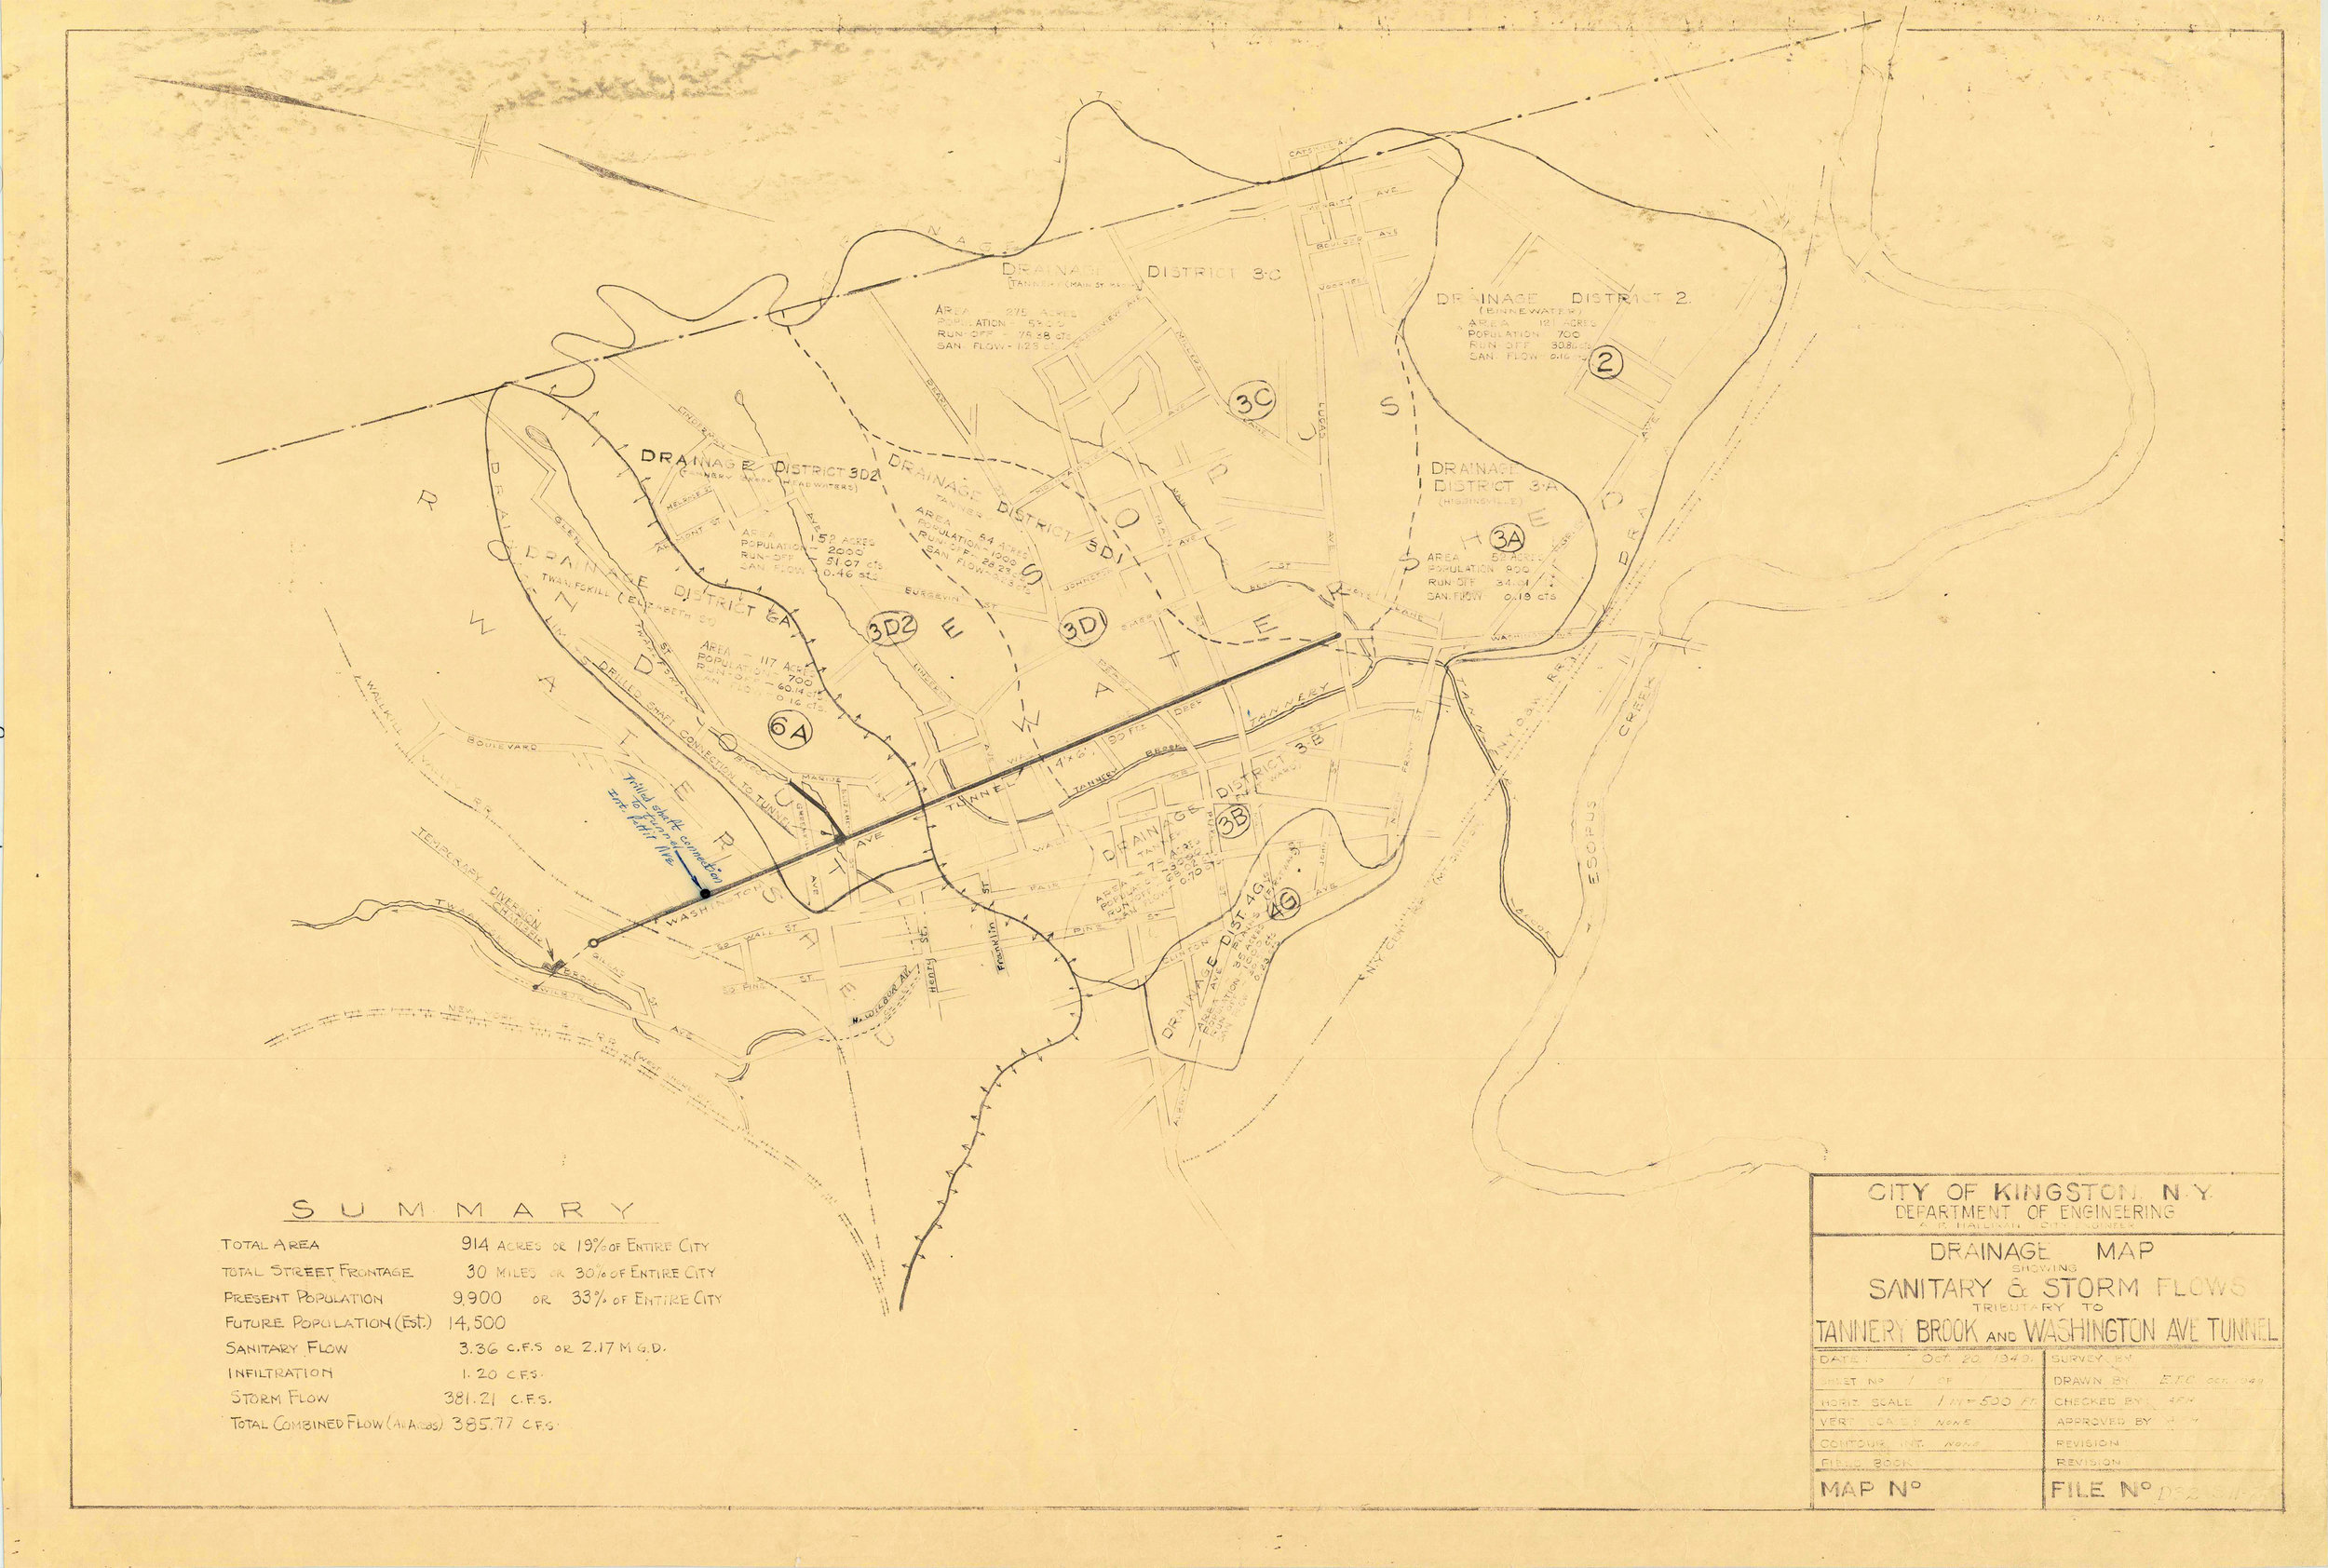 Urban Renewal — Tracing the Tannery Brook on pocantico river map, neversink reservoir, shandaken tunnel, neversink river, rondout creek map, wappingers creek map, cannonsville reservoir, new jersey creek map, white plains map, east branch delaware river, croton river, schoharie creek, yonkers map, neversink river map, rondout creek, cedar river map, philadelphia creek map, ashokan reservoir map, cattaraugus creek map, anchorage map, ellicott creek map, kensico reservoir, pepacton reservoir, catskill creek, rondout reservoir, catskill high peaks, east delaware tunnel, orange county creek map, pennsylvania creek map, nine mile creek map, east branch croton river, highland creek map, catskill state park, west branch delaware river, oak orchard creek map, winnisook lake, scajaquada creek map, greenwich village map, ashokan reservoir,